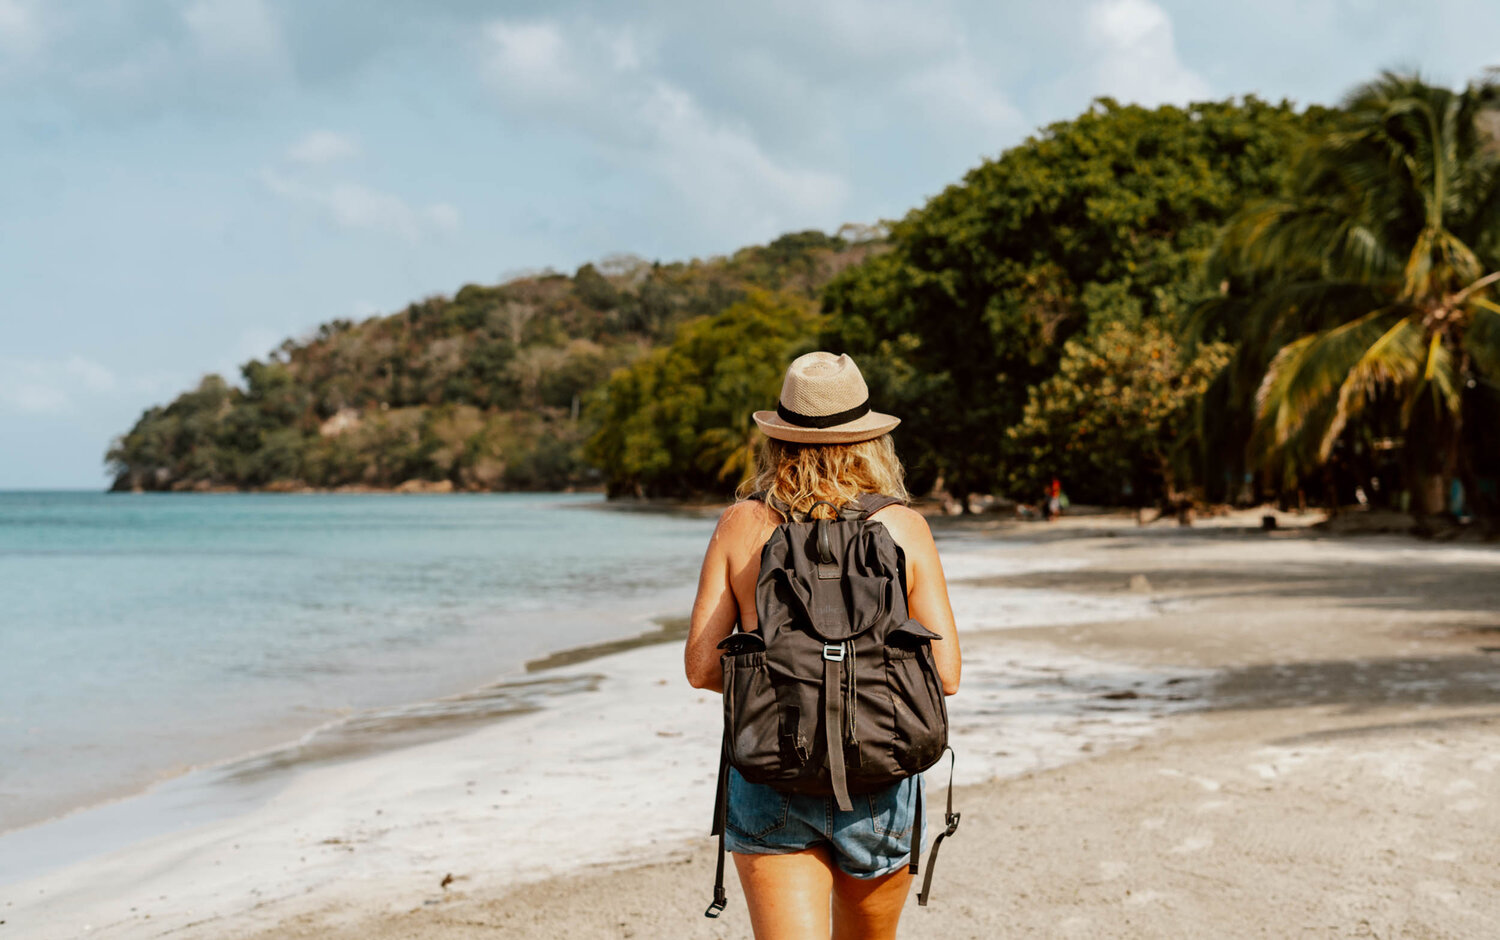 The Backpacking Essentials: The Things We Couldn't Travel Without